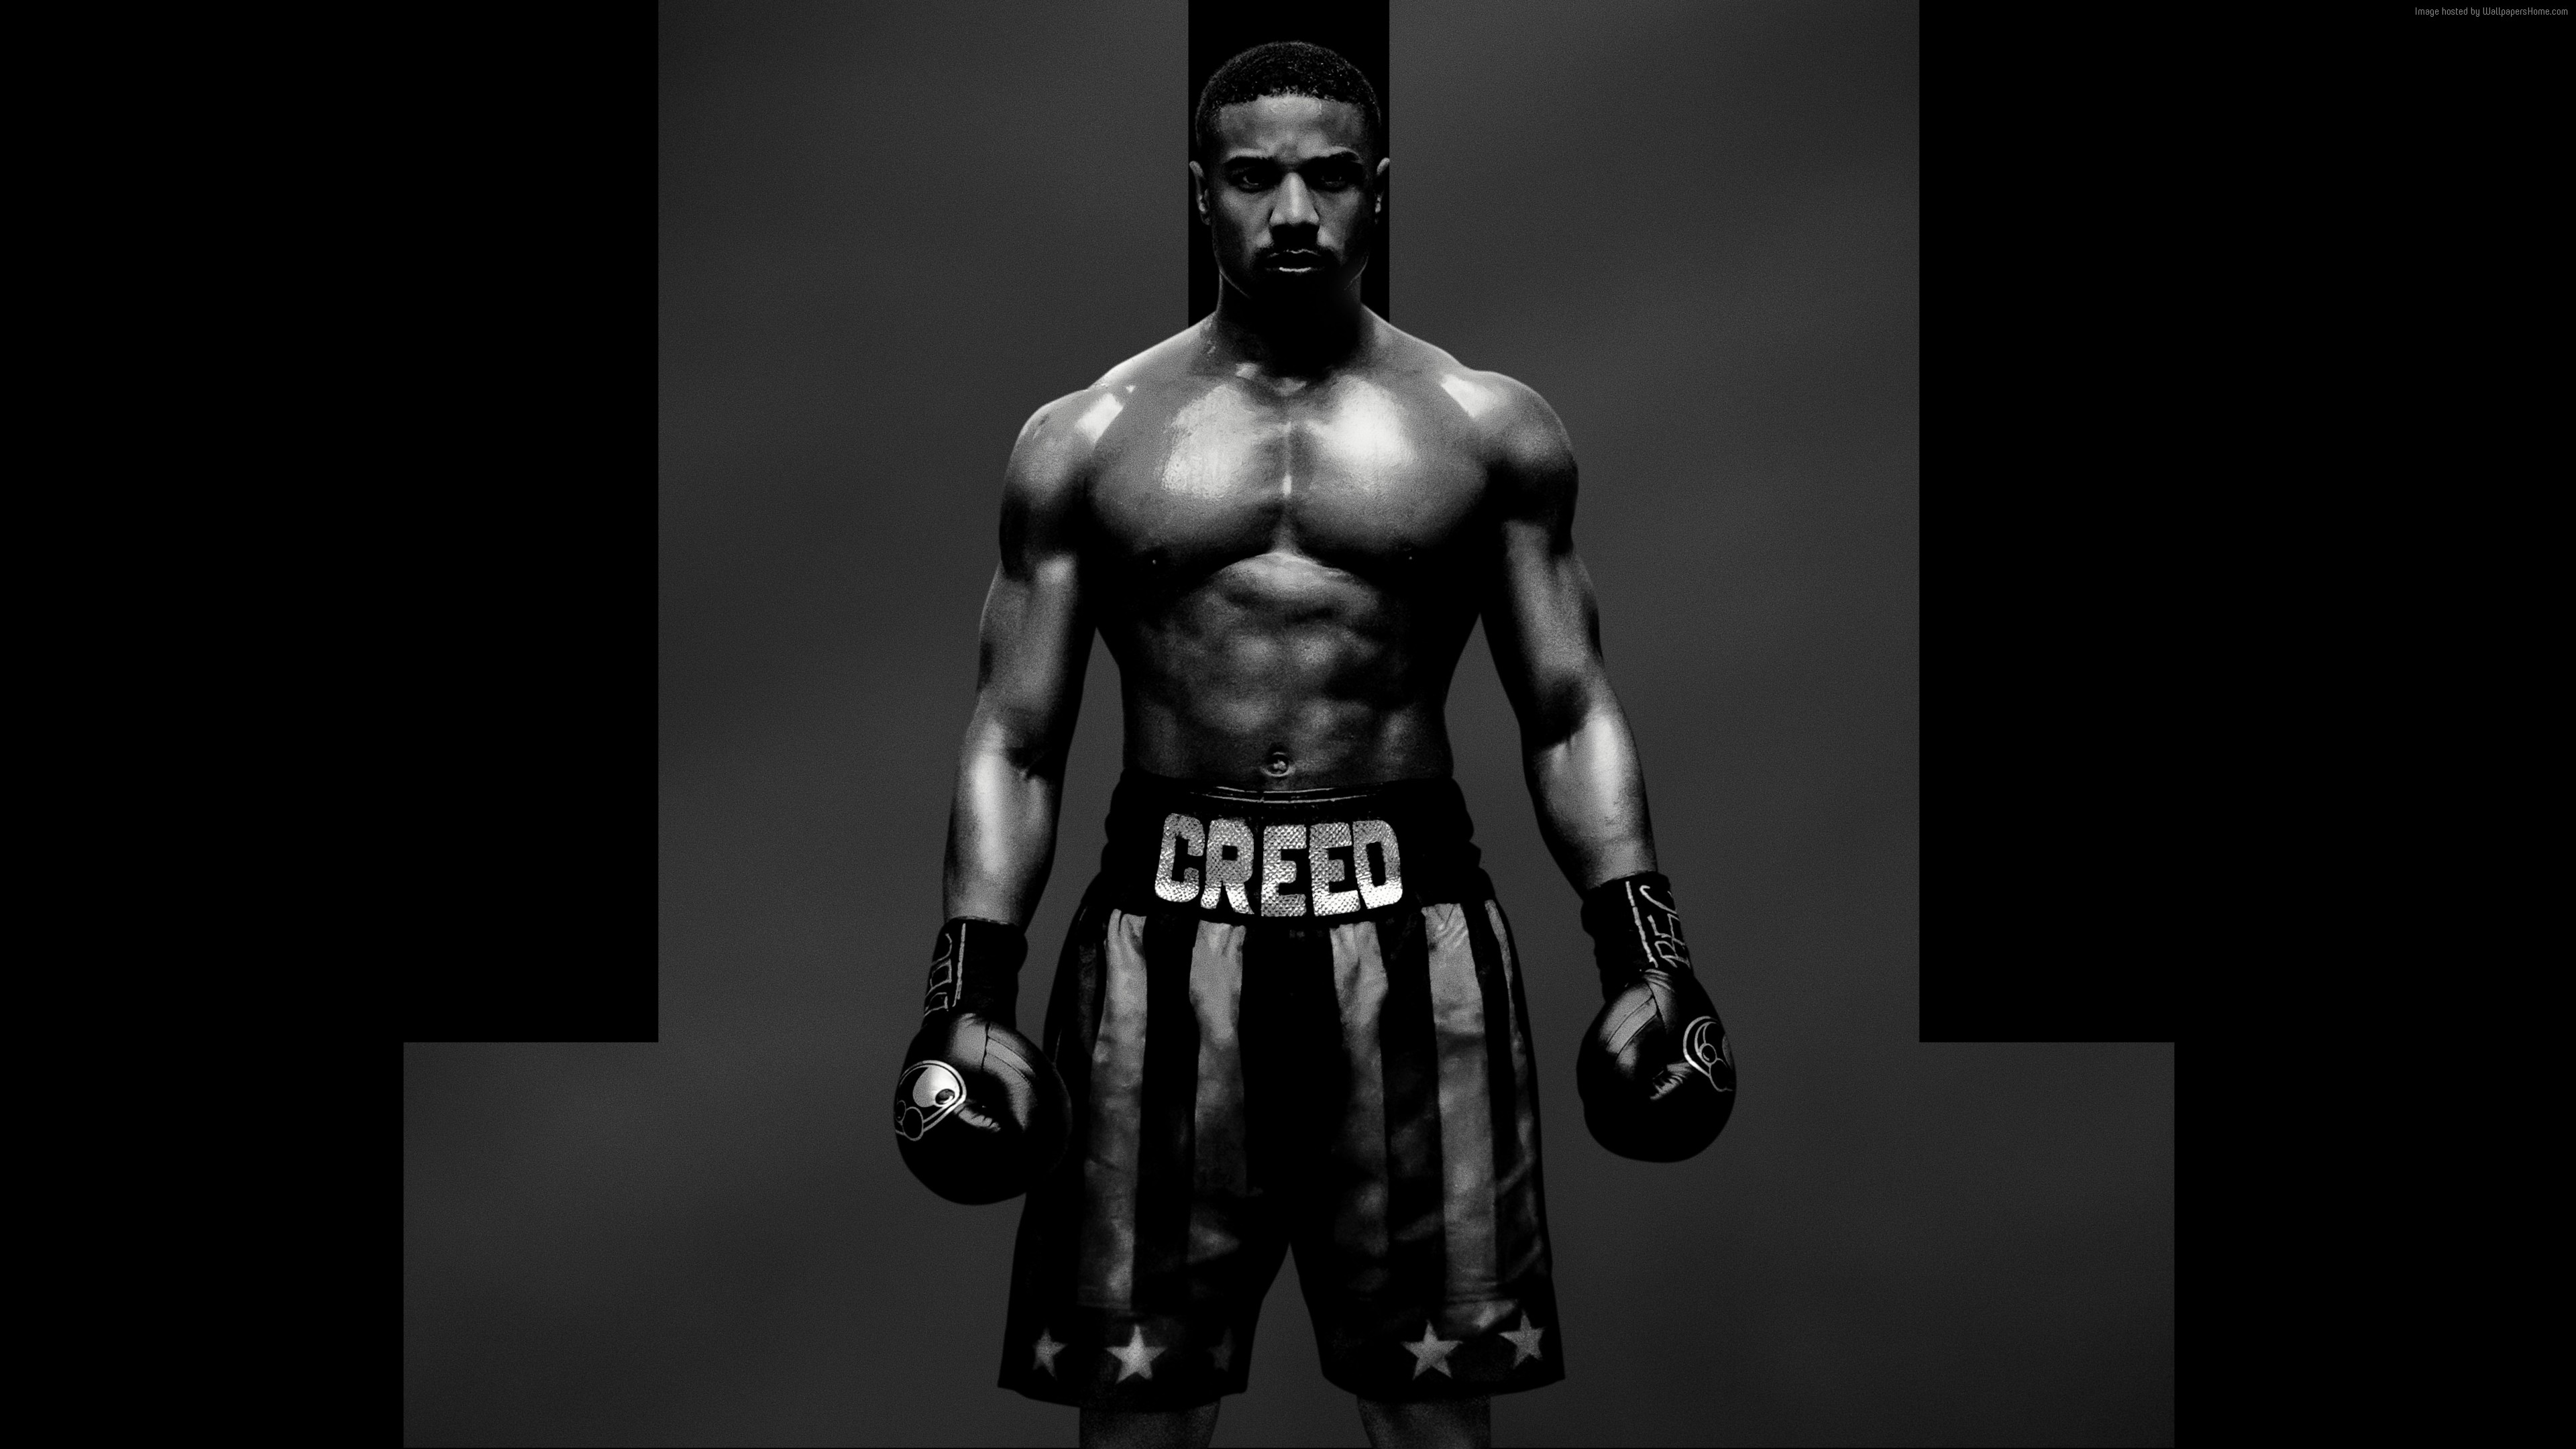 Wallpaper Creed 2, Adonis Johnson, poster, 7K, Movies